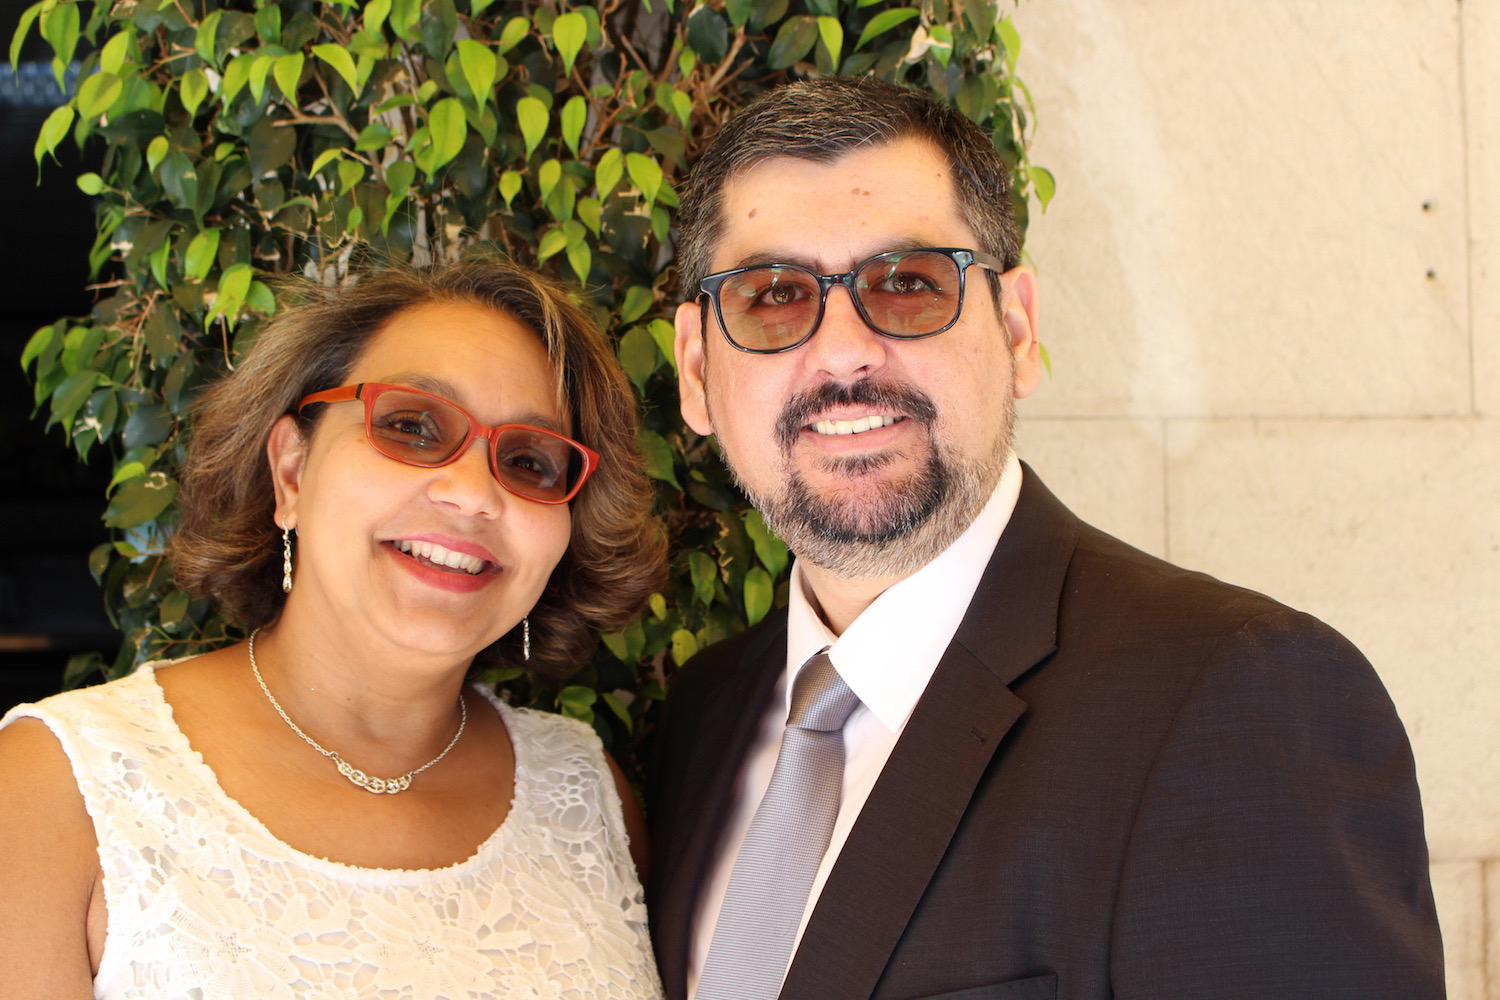 Liliana and Fernando Almeida